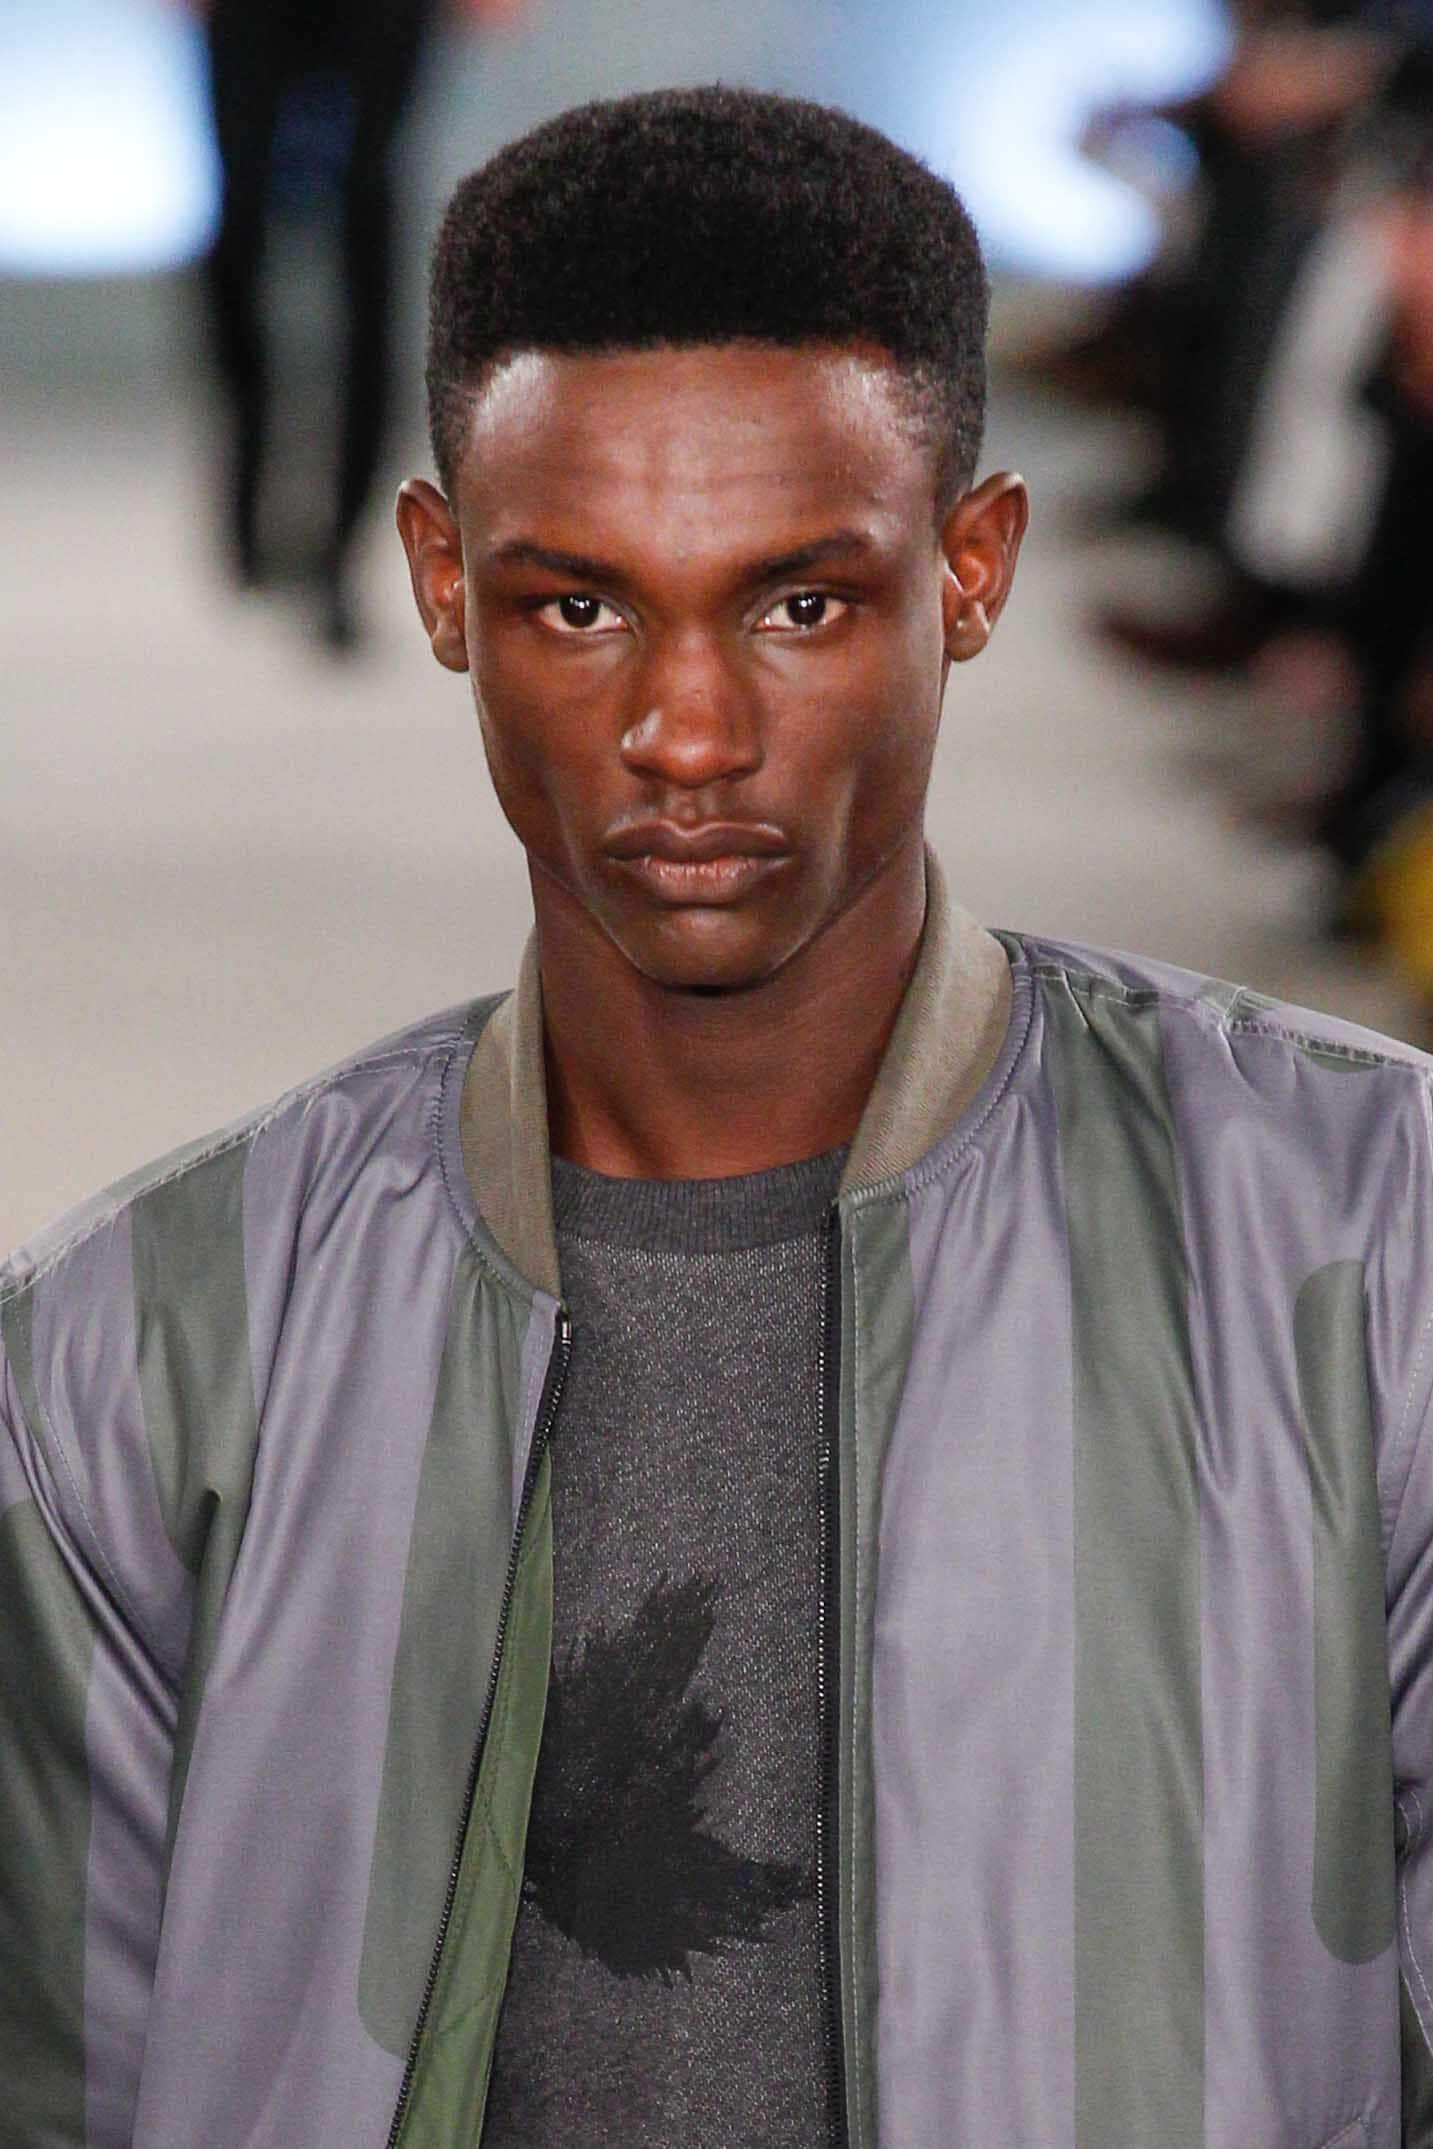 High top fade: Black man on runway with fade haircut wearing a silver grey jacket